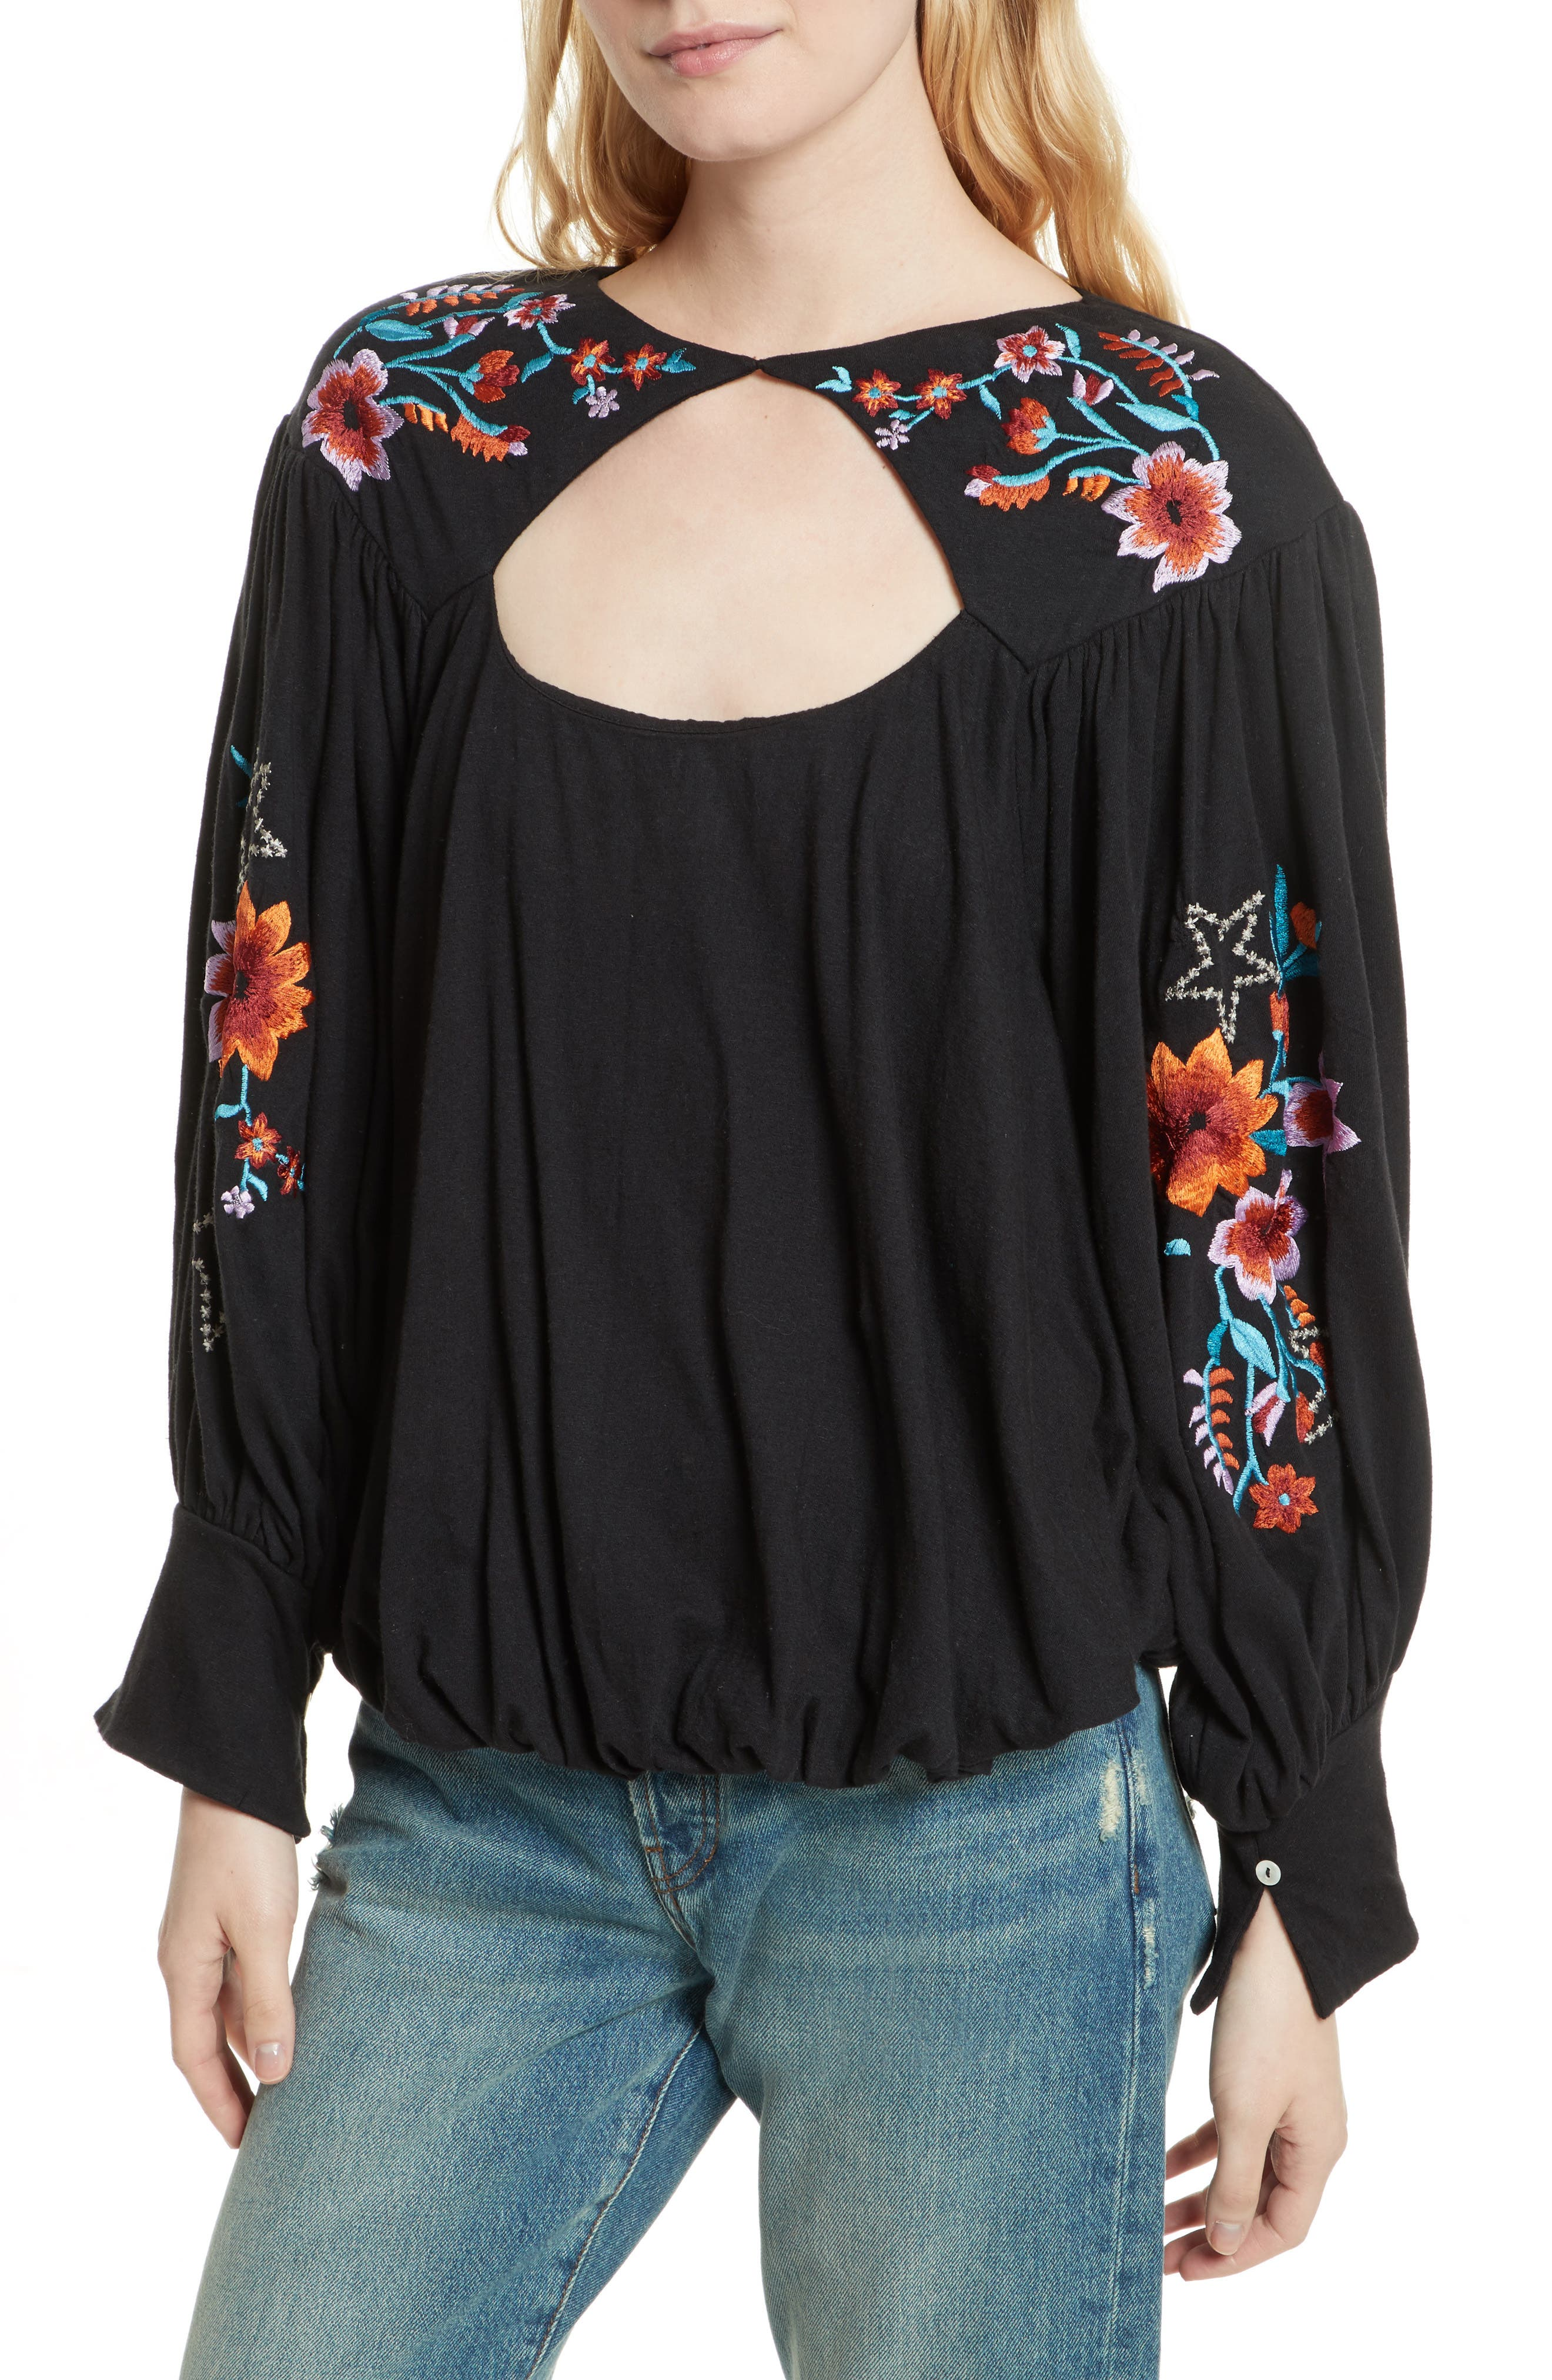 FREE PEOPLE Lita Embroidered Bell Sleeve Top, Main, color, 001